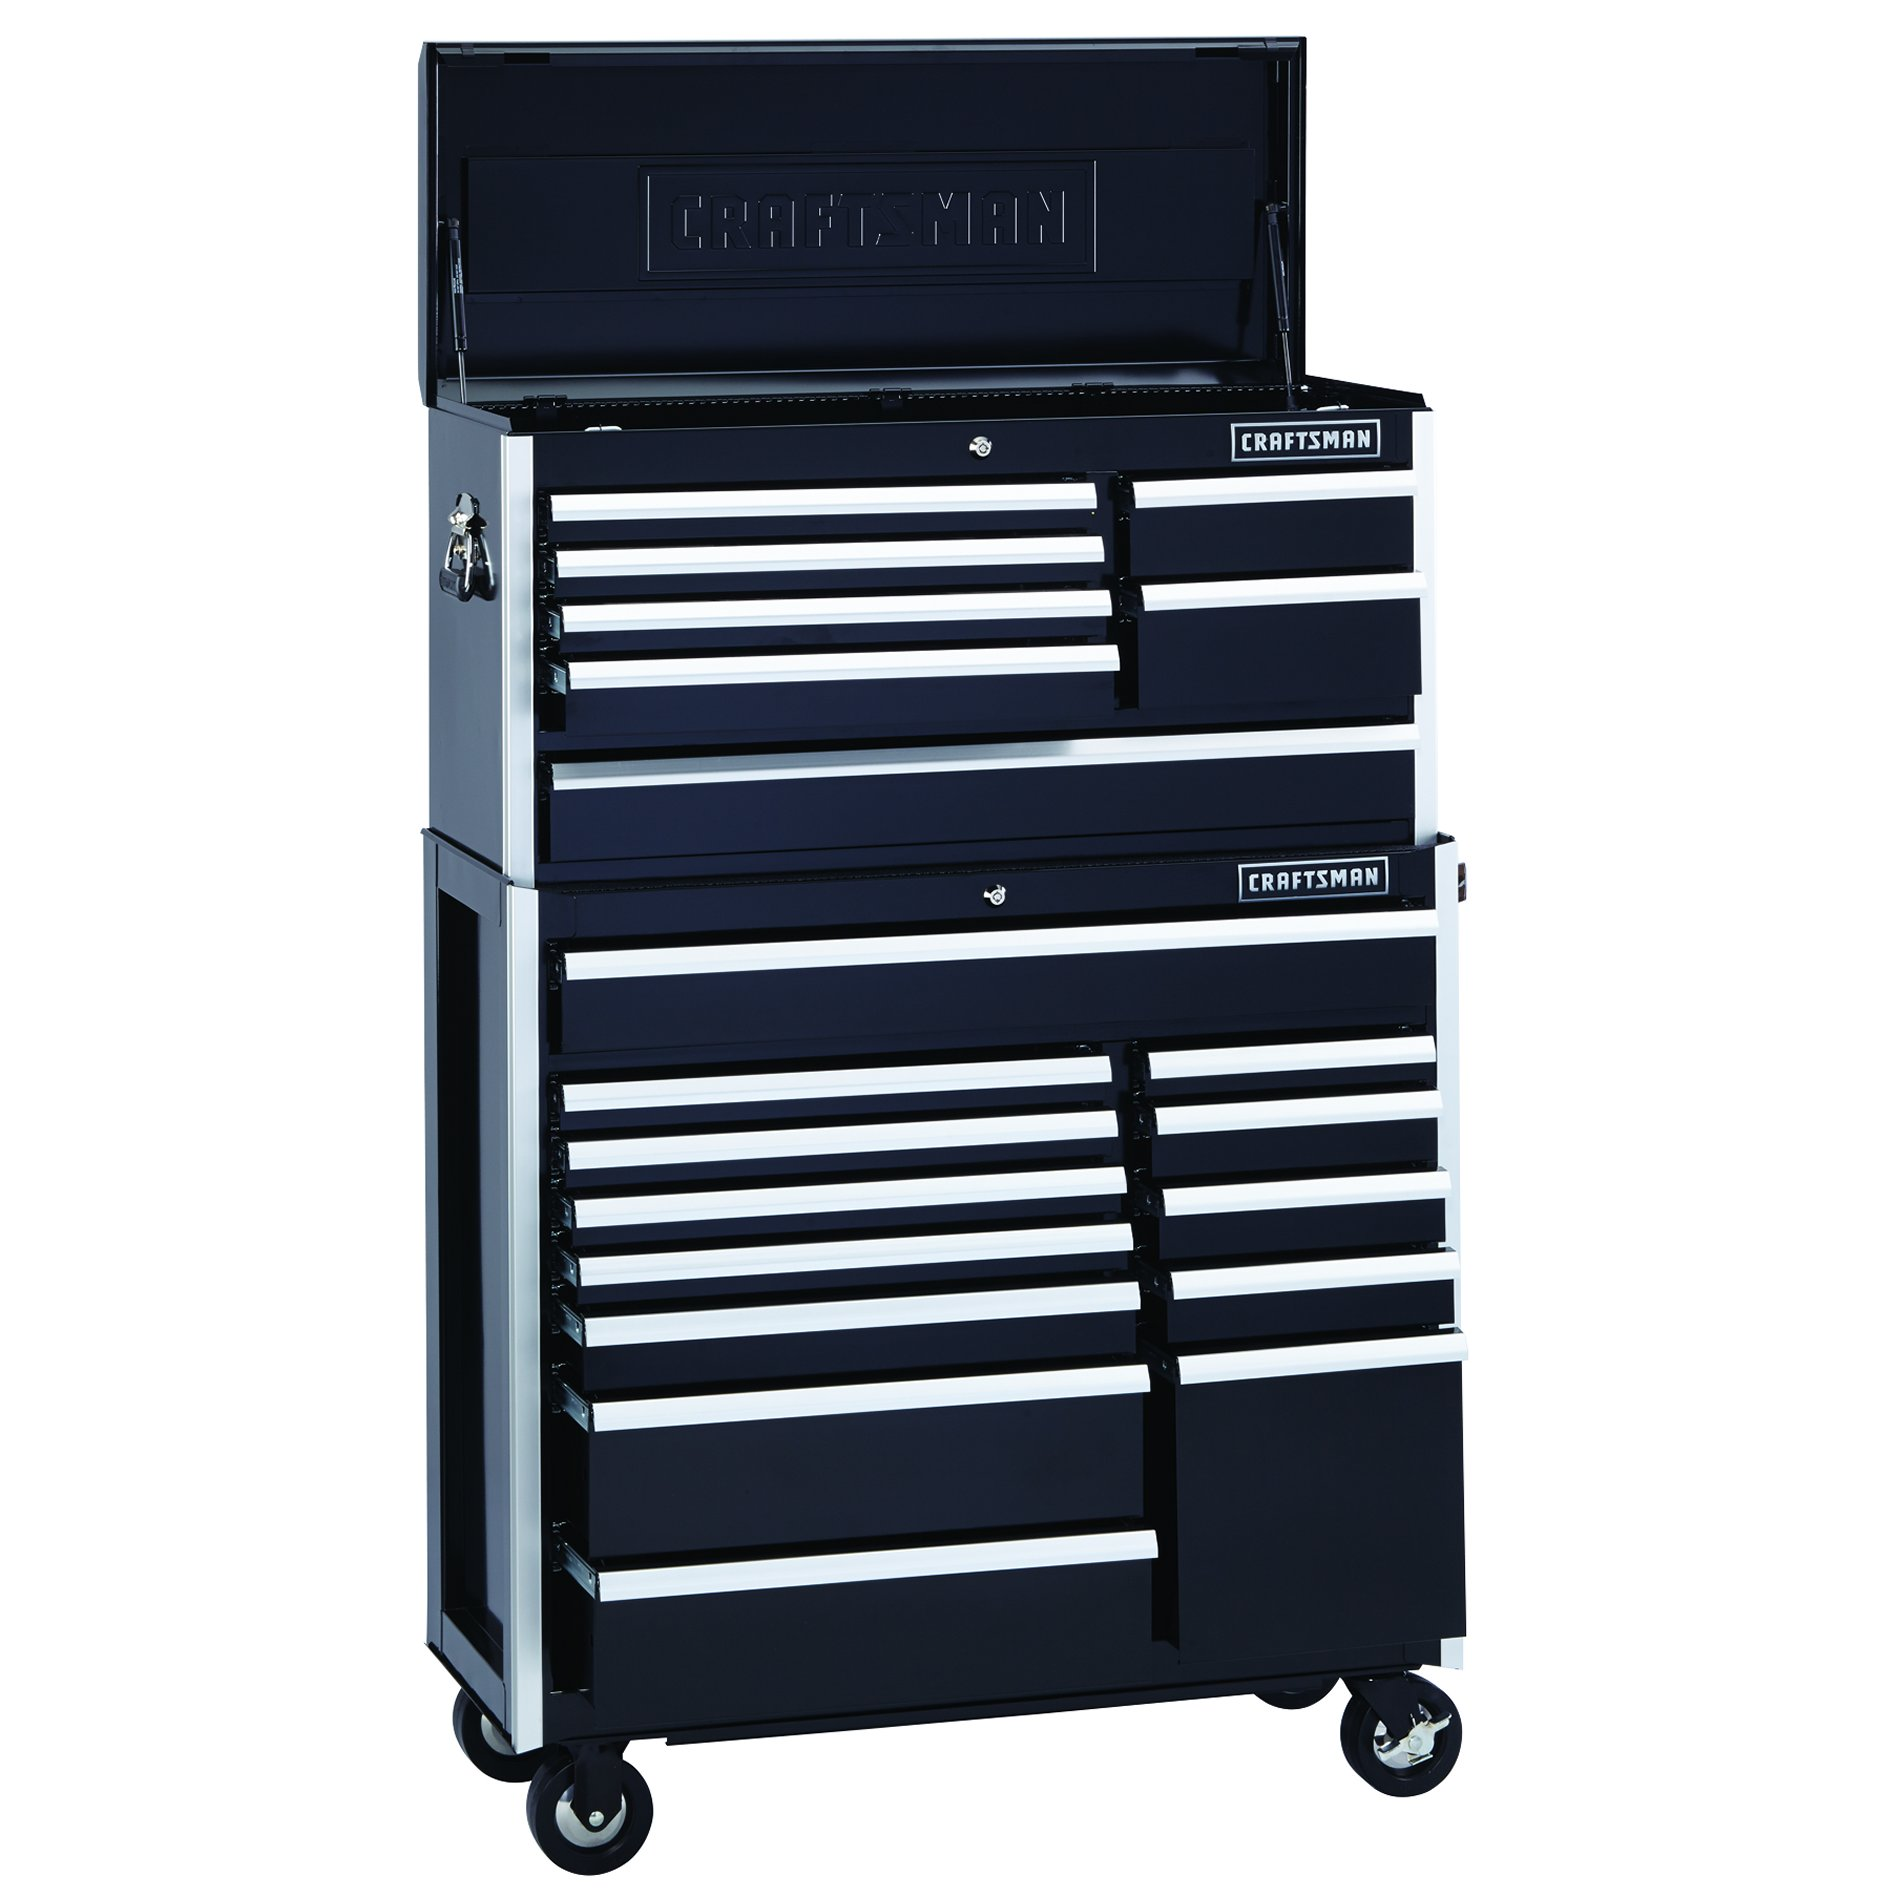 Craftsman EDGE Series 40-In. 7-Drawer Premium Heavy-Duty Ball-Bearing Top Chest - Black